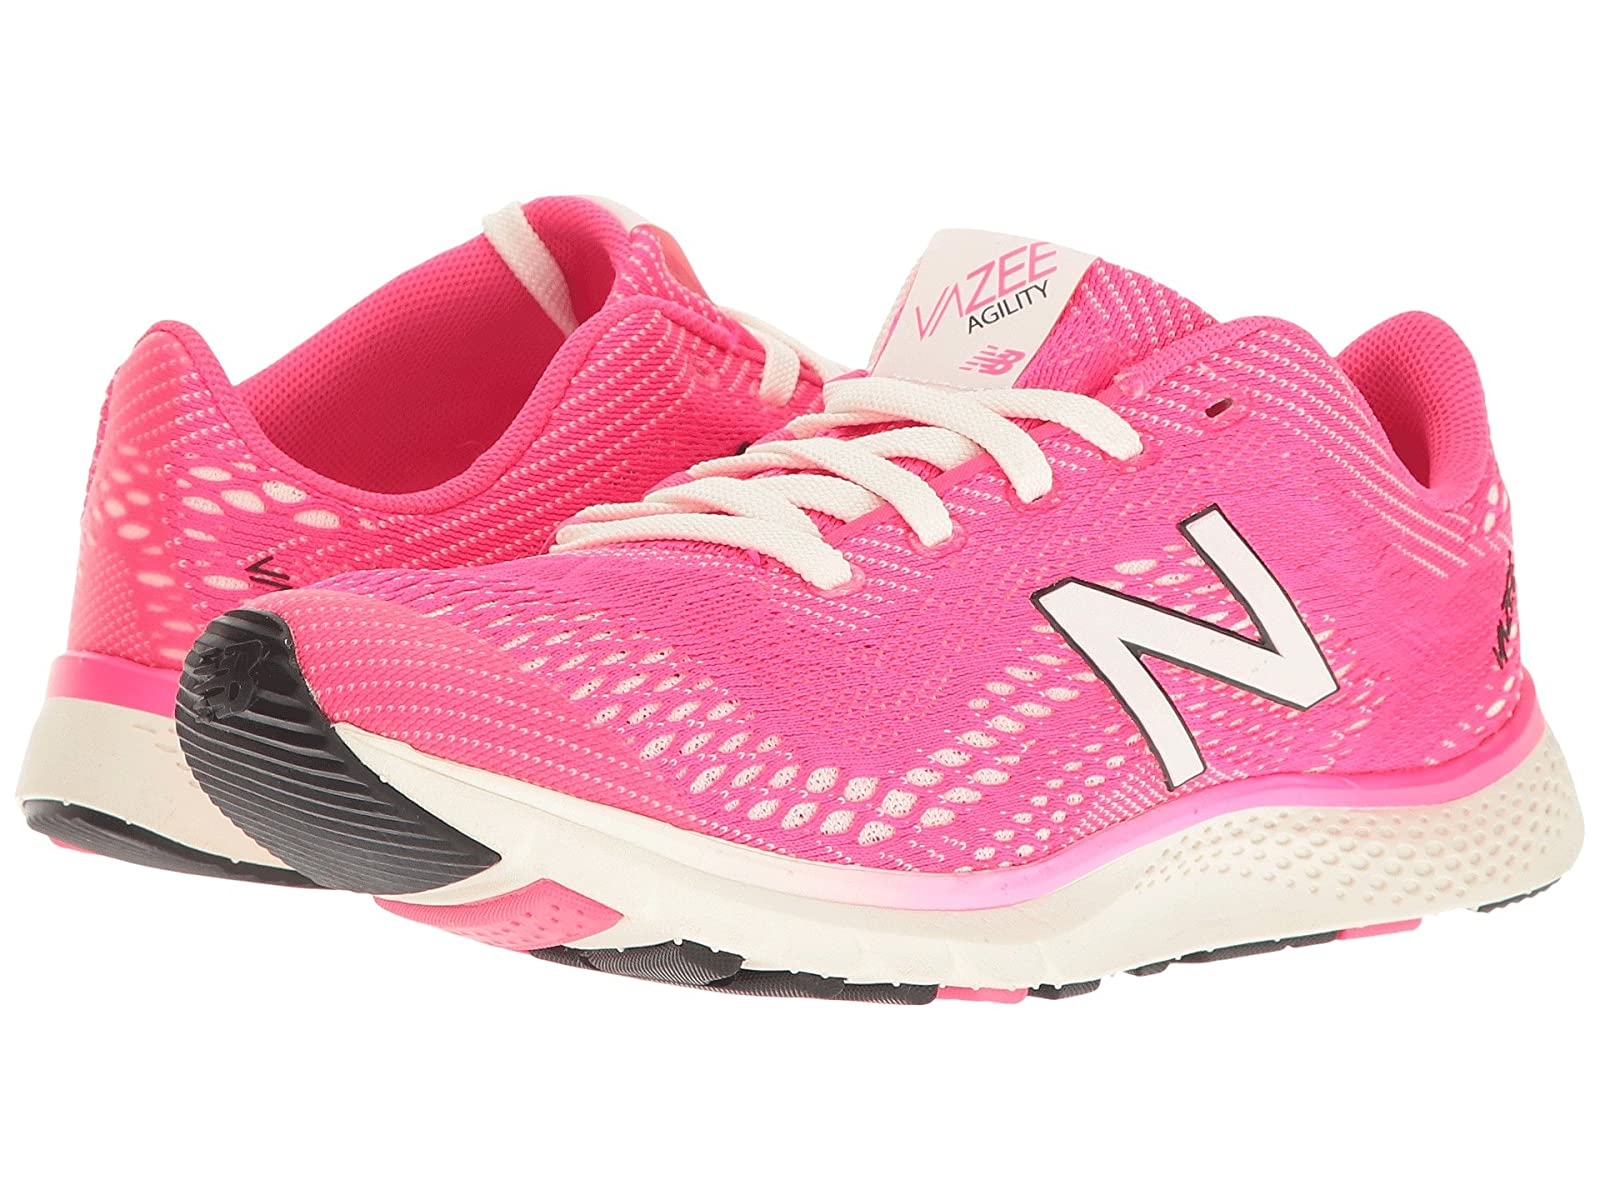 New Balance Vazee AgilityCheap and distinctive eye-catching shoes